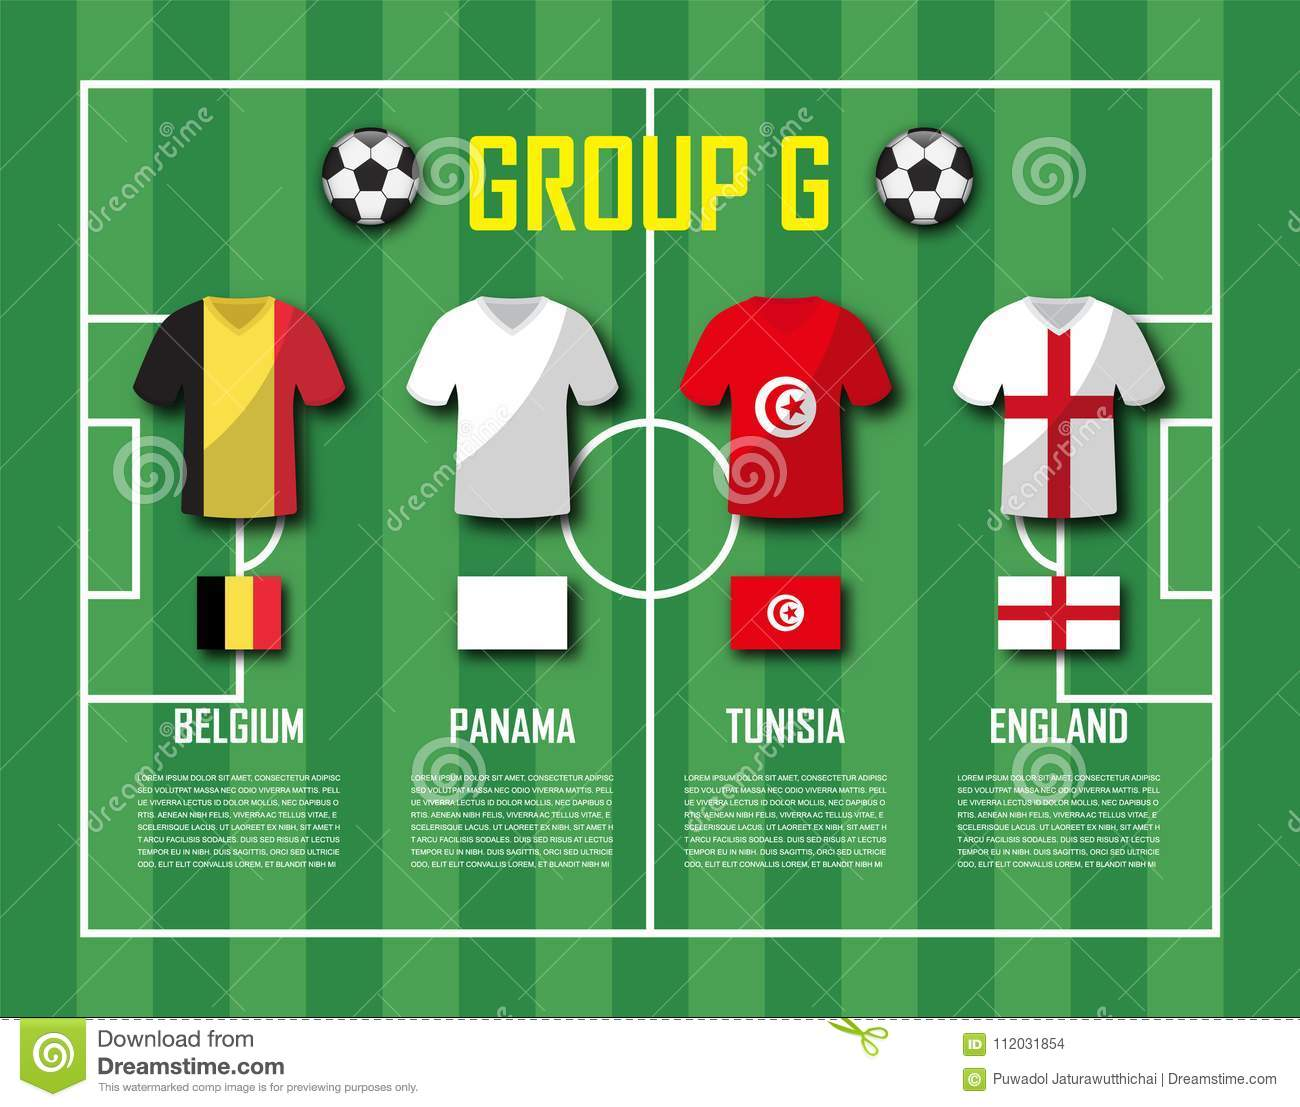 Soccer cup 2018 team group G . Football players with jersey uniform and  national flags . Vector for international world championship tournament . d1c89b8e7